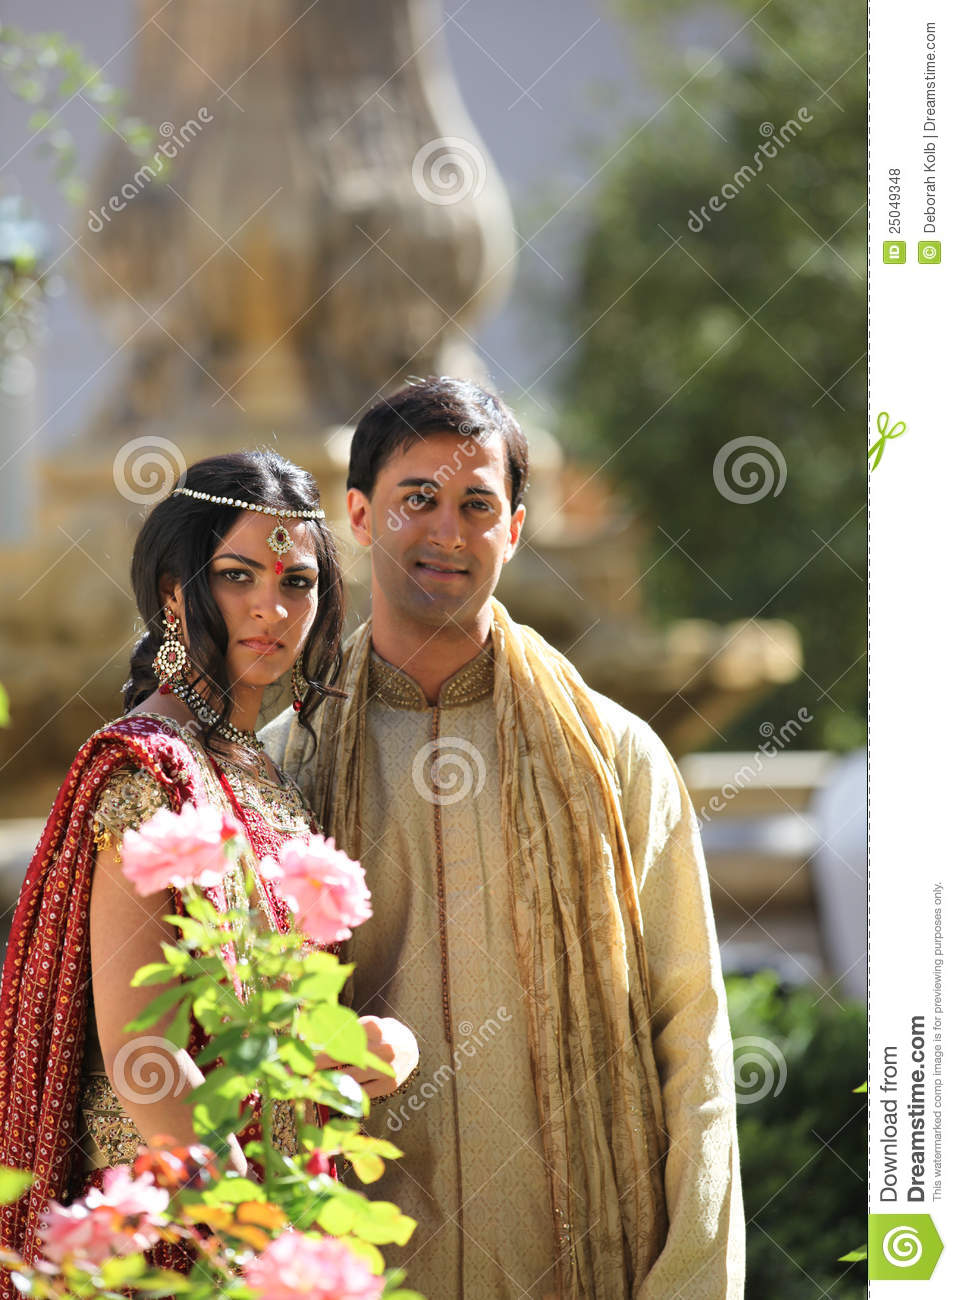 Beautiful Indian Couple Royalty Free Stock Photos Image 25049348